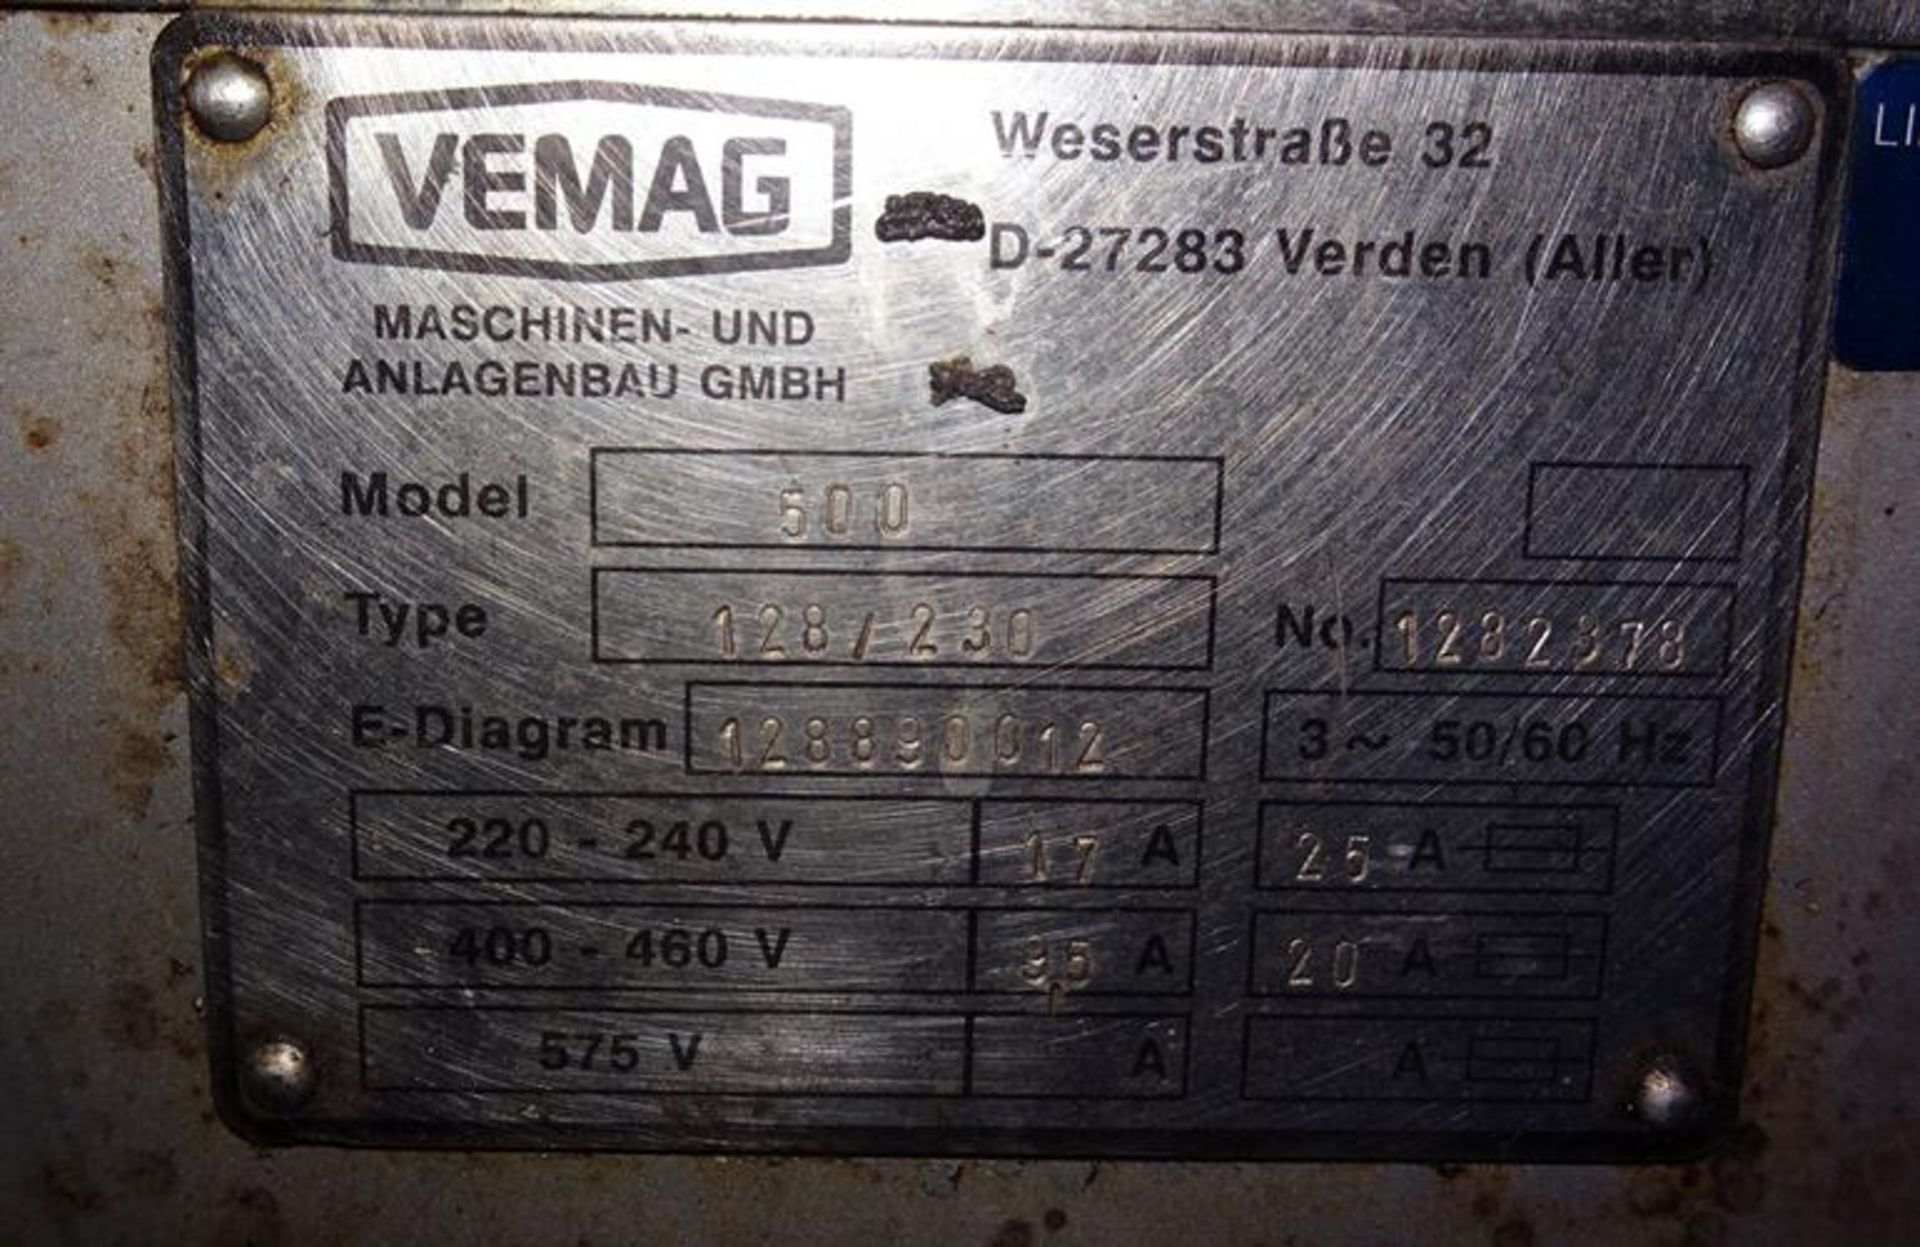 Vemag Robot 500 With PC 878 Portion Controls - Image 7 of 9